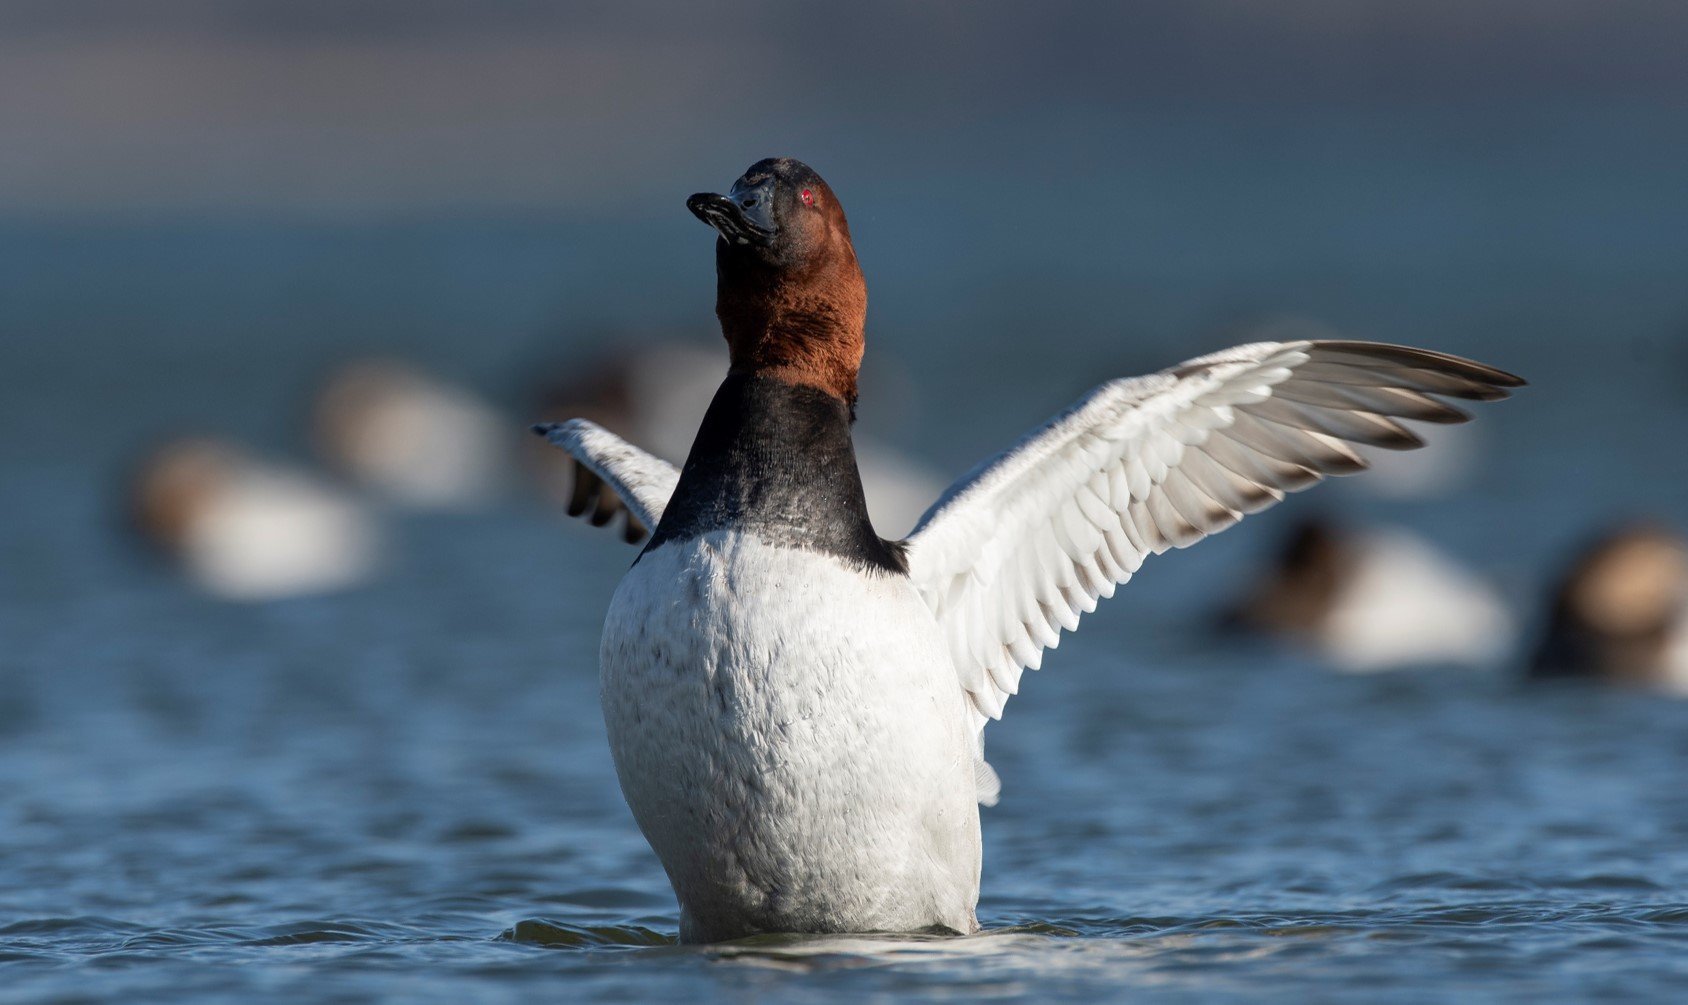 A Canvasback stretches its wings on a large body of water with other Canvasbacks bobbing in the background.